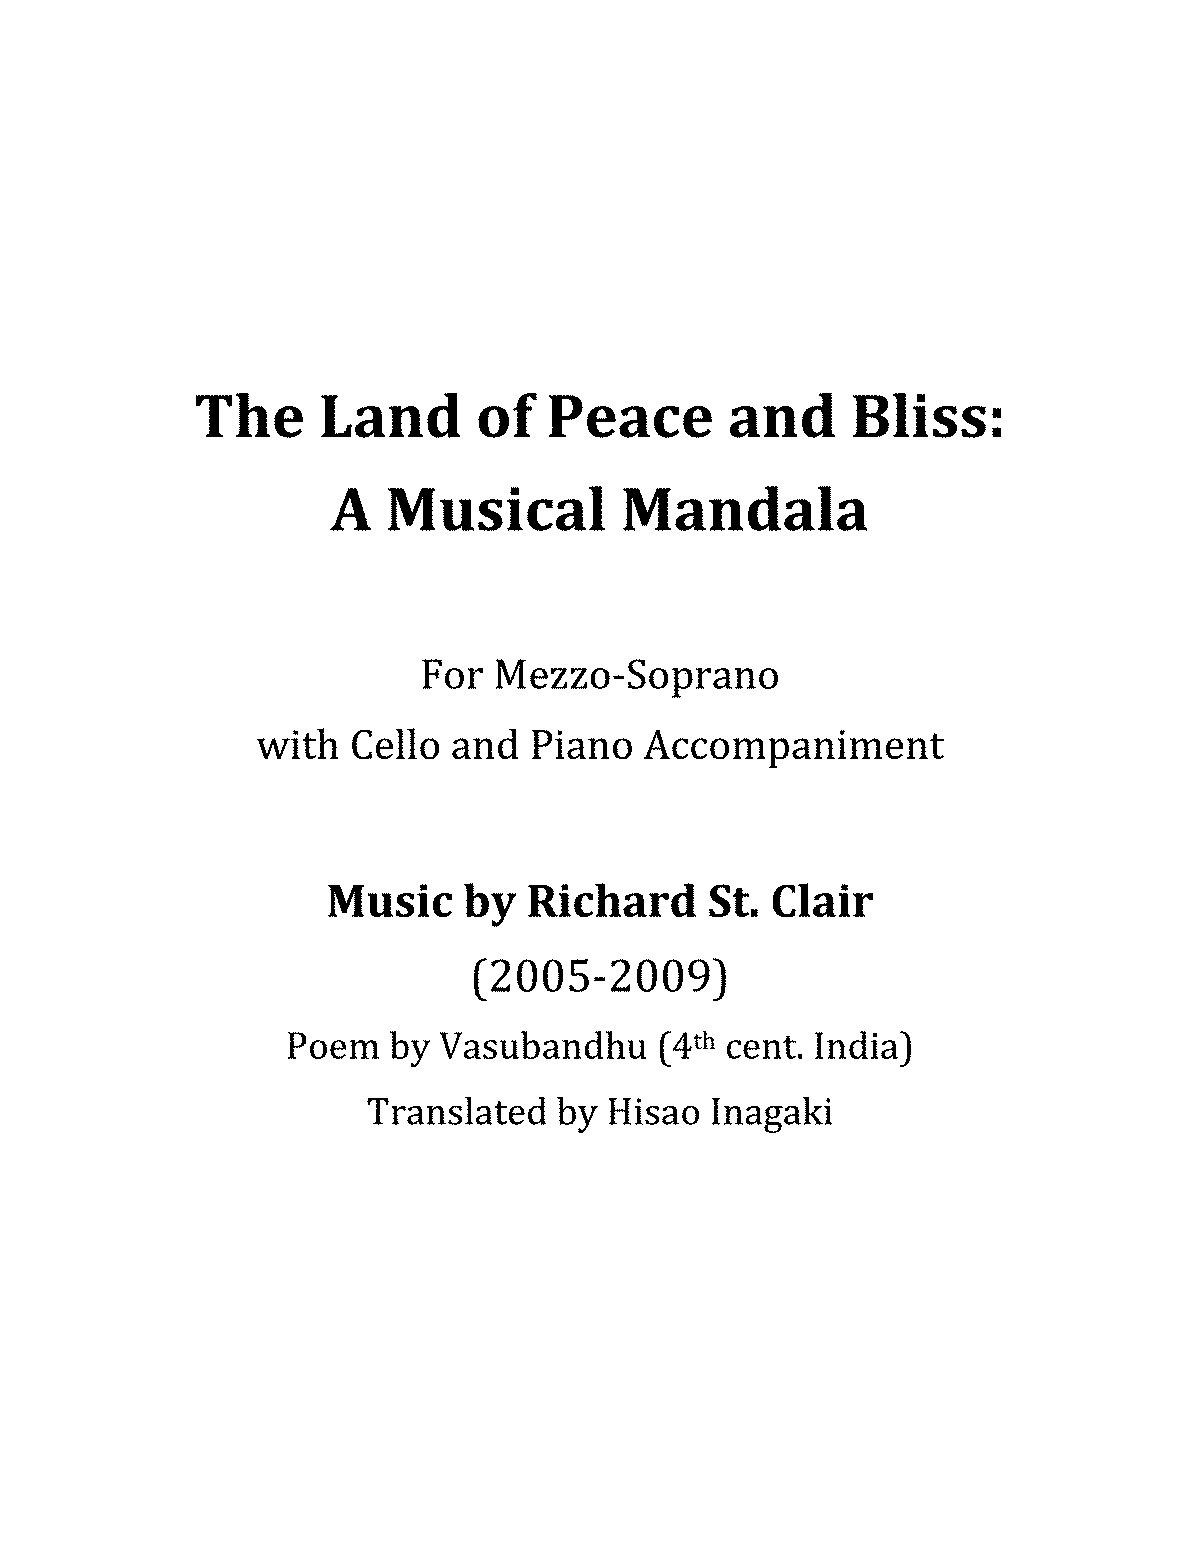 WIMA.ca2c-Land-of-Peace-and-Bliss.pdf